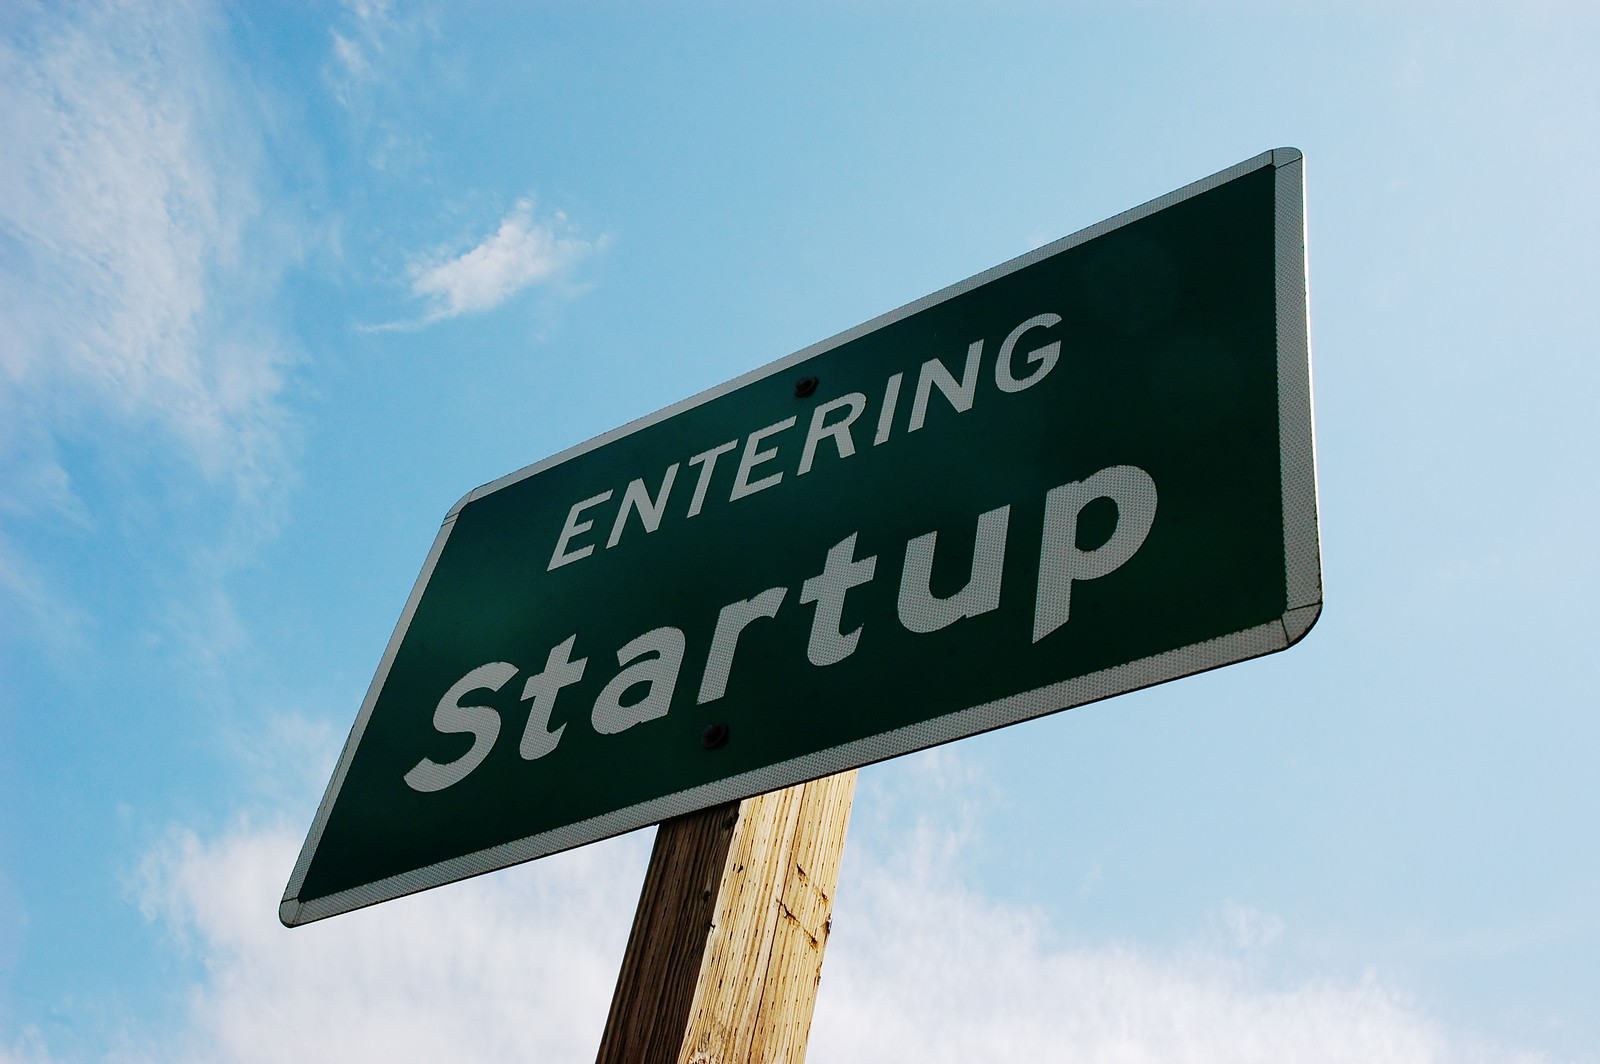 /the-top-50-startups-in-the-us-a0e2856e3c96 feature image